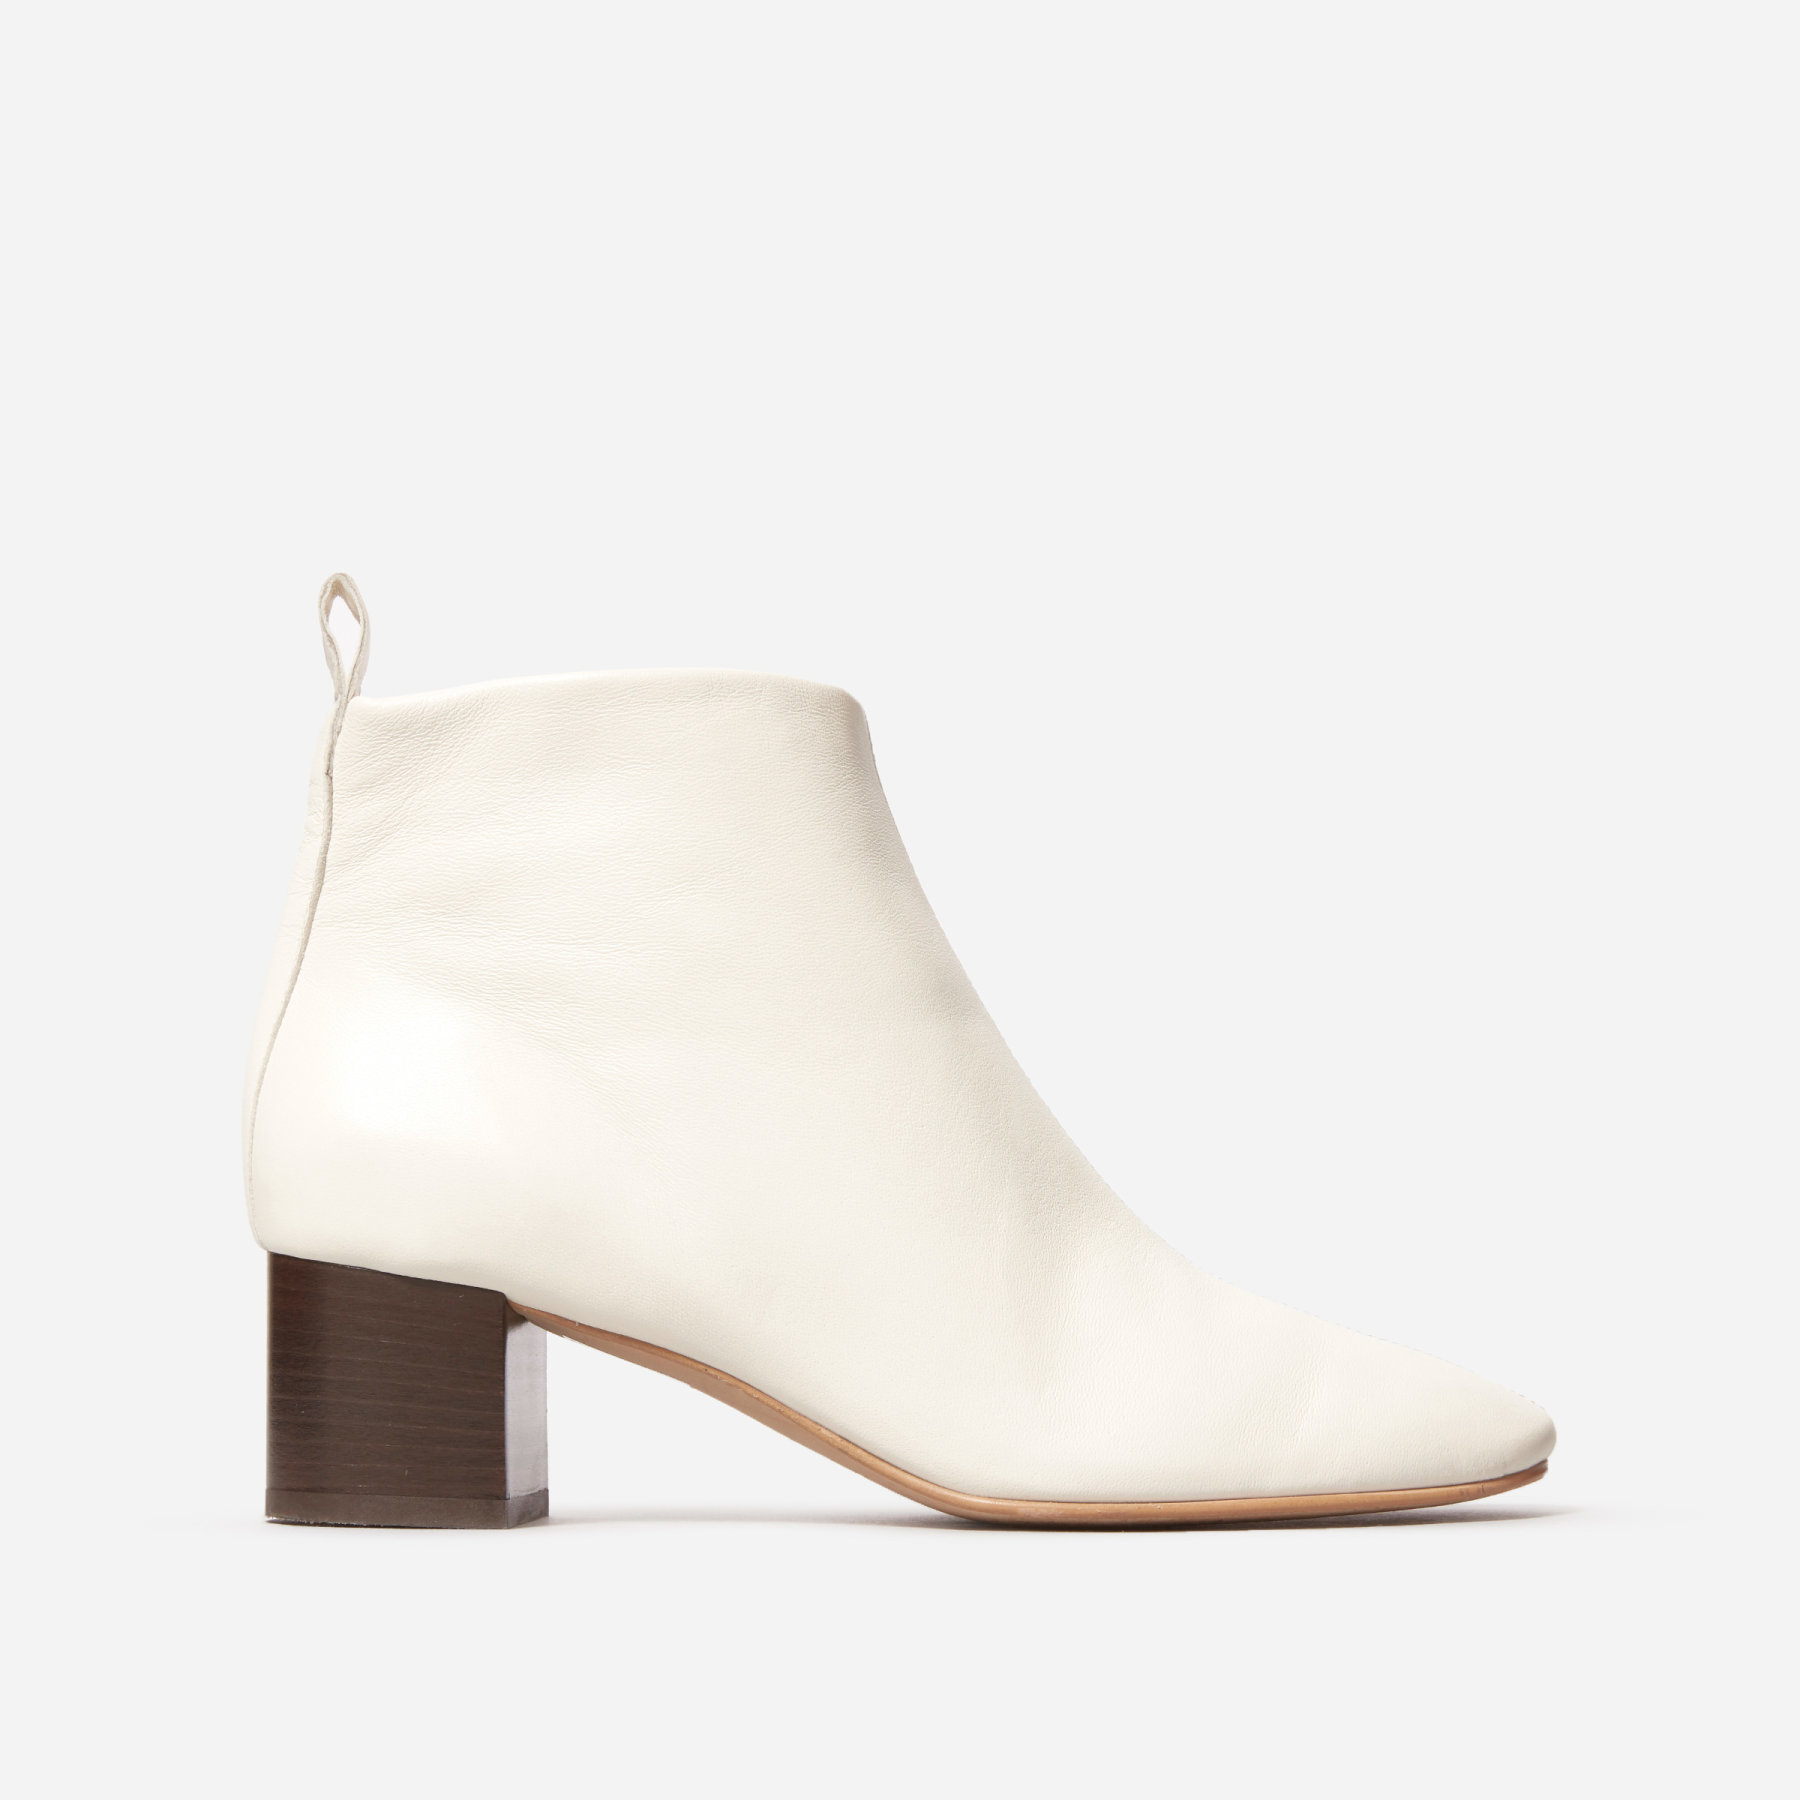 white ankle booties with brown block heel